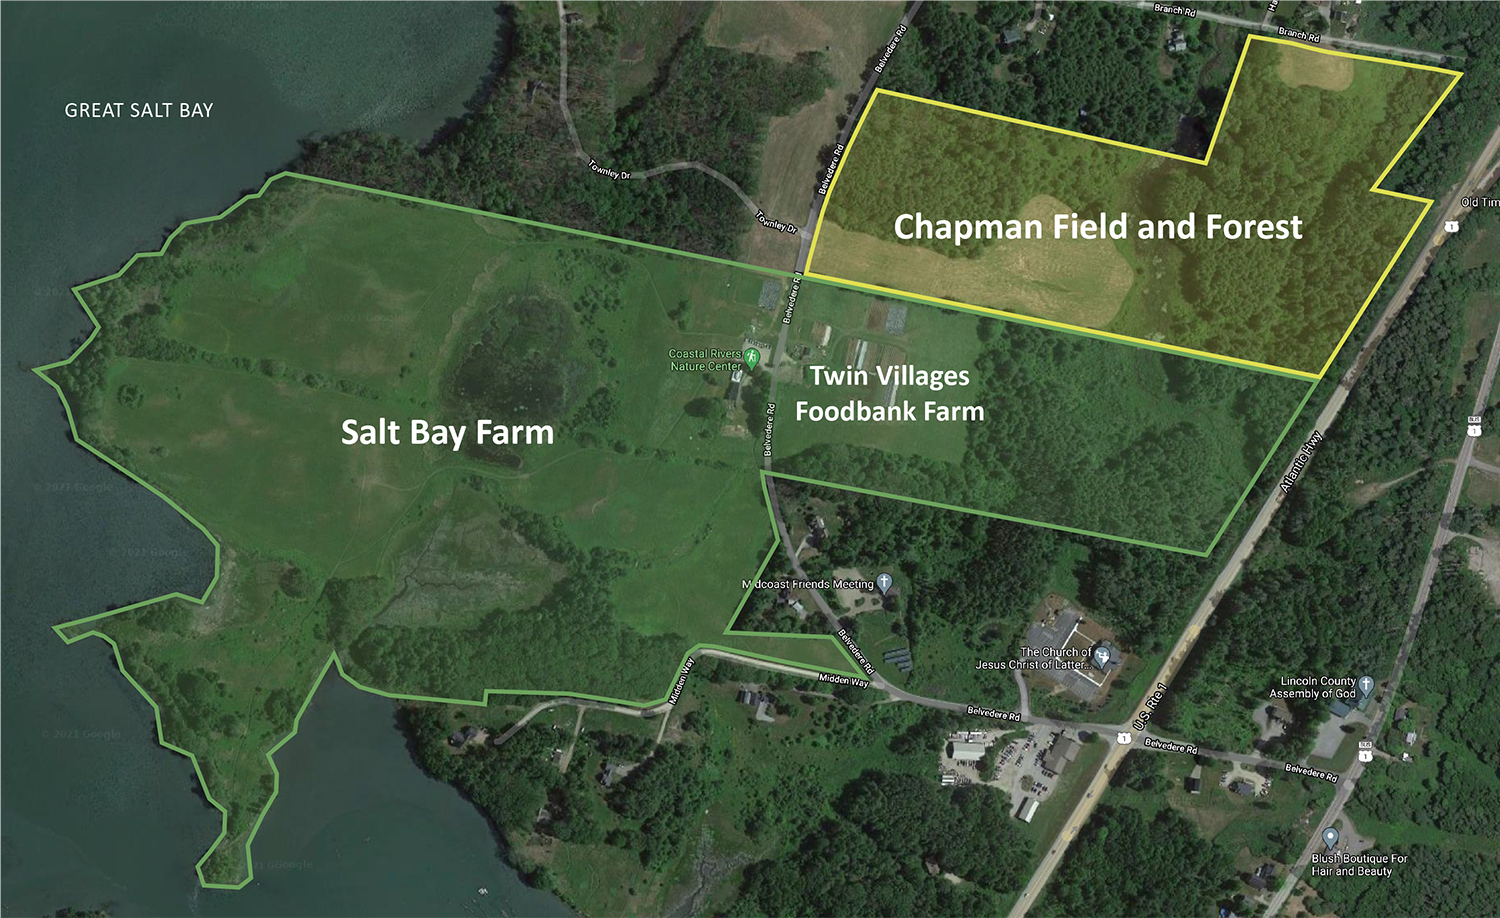 map of Salt Bay Farm with overlays showing new property